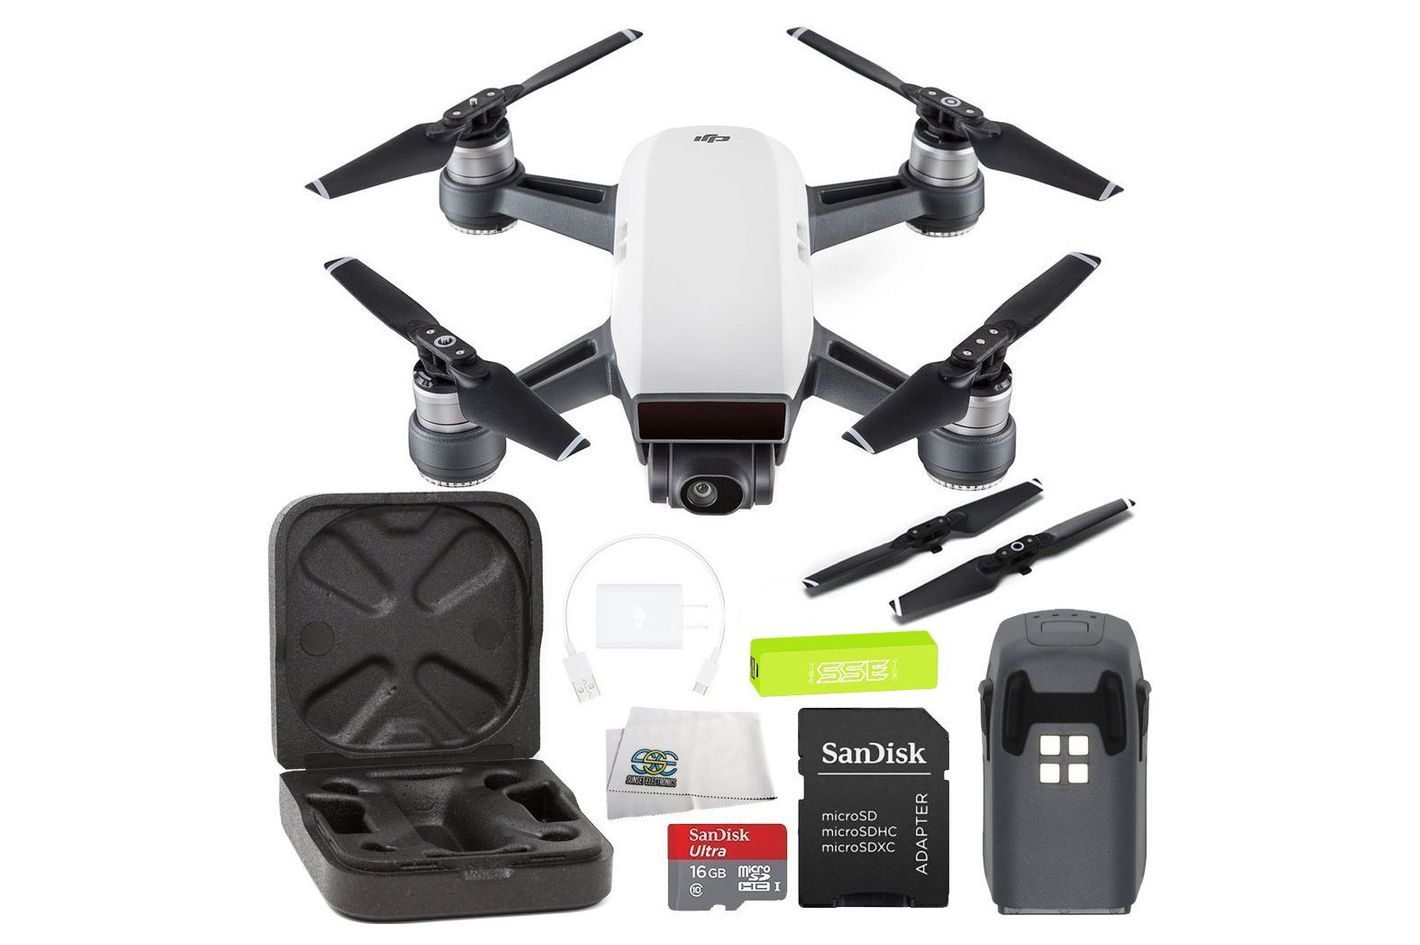 SSE DJI Spark Portable Mini Drone Quadcopter Starters Bundle (Alpine White)